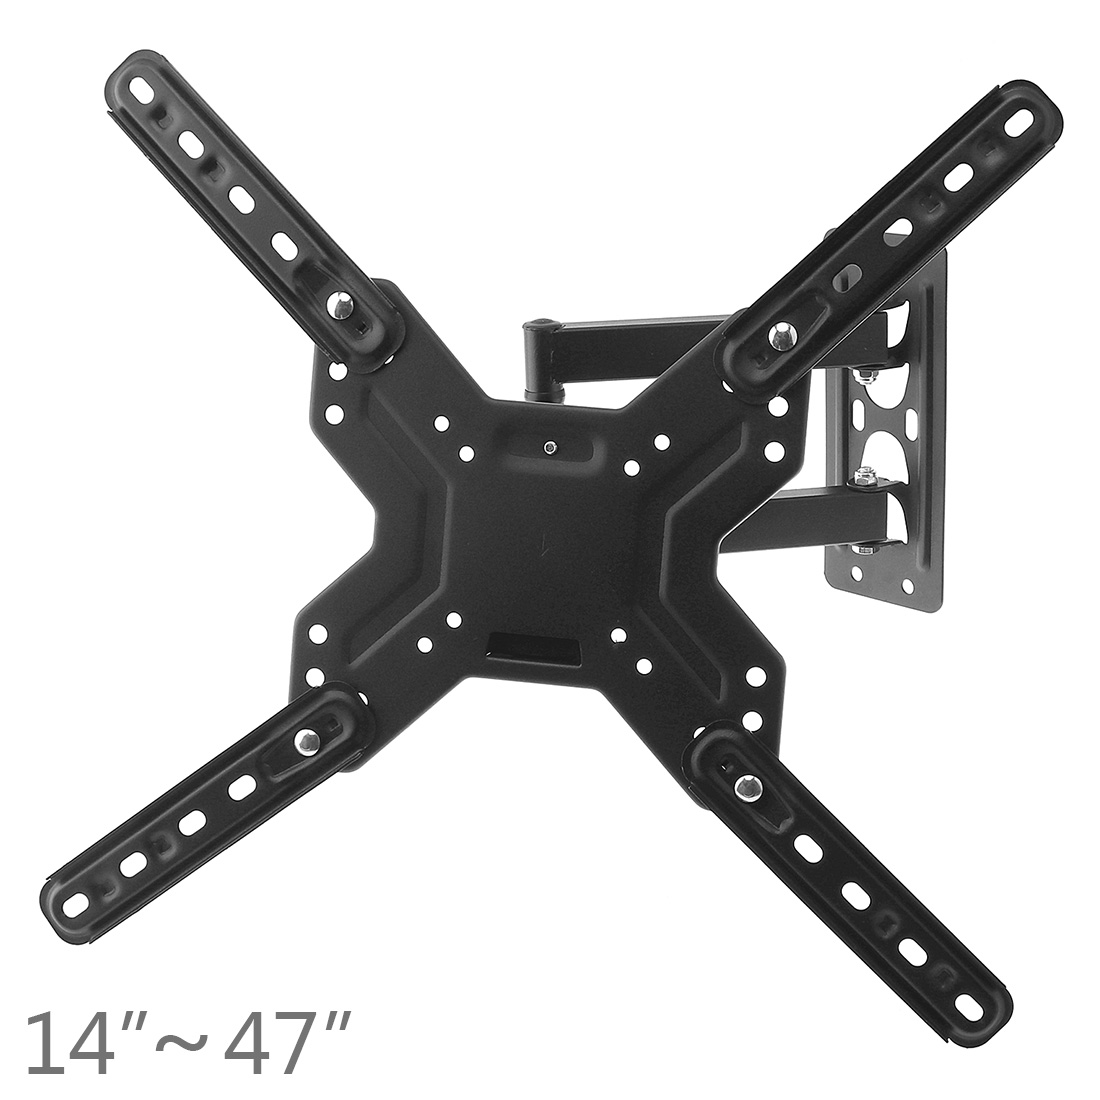 Universal 30KG Full Mount Adjustable Telescopic Revolving TV Wall Bracket for 14 - 47 Inch LED LCD Flat Panel Plasma TV Stand neewer® white pink lace protector tv cover for 37 inch led lcd plasma tv unfolded 95x12x70cm